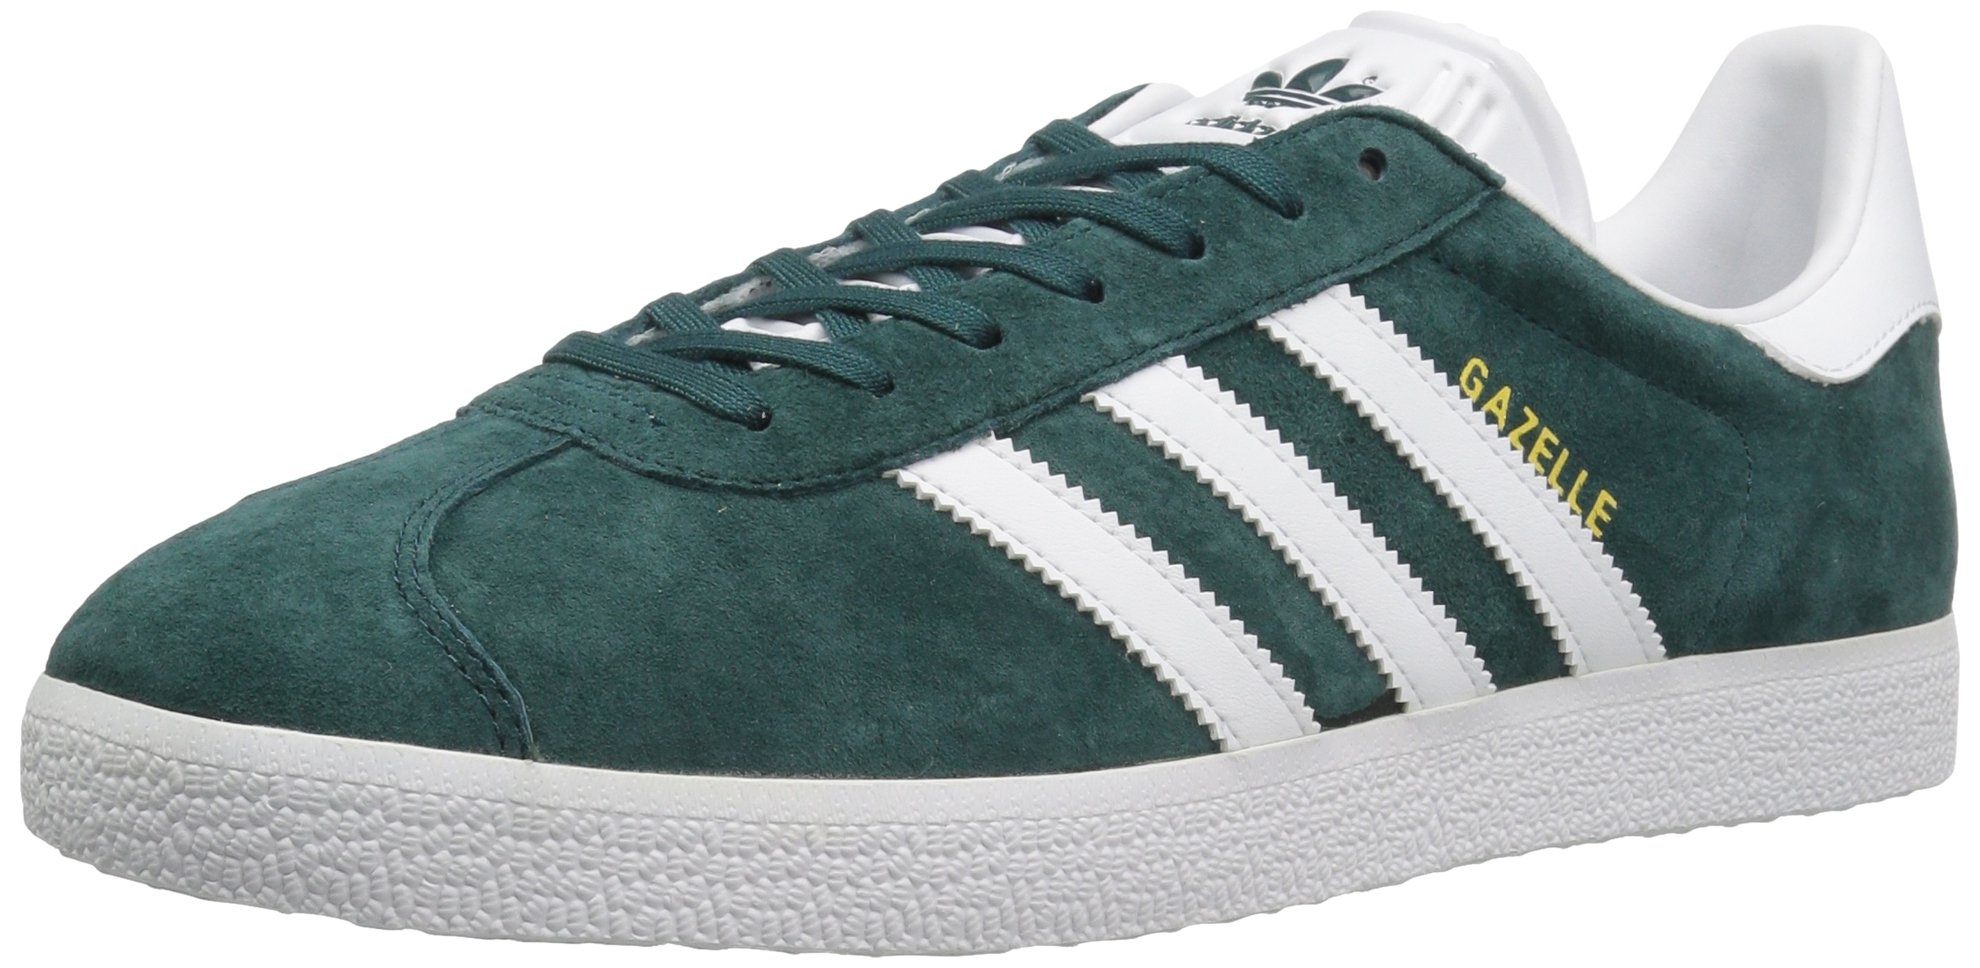 ADIDAS ORIGINALS GAZELLE Sneakers mystery greenwhitegold